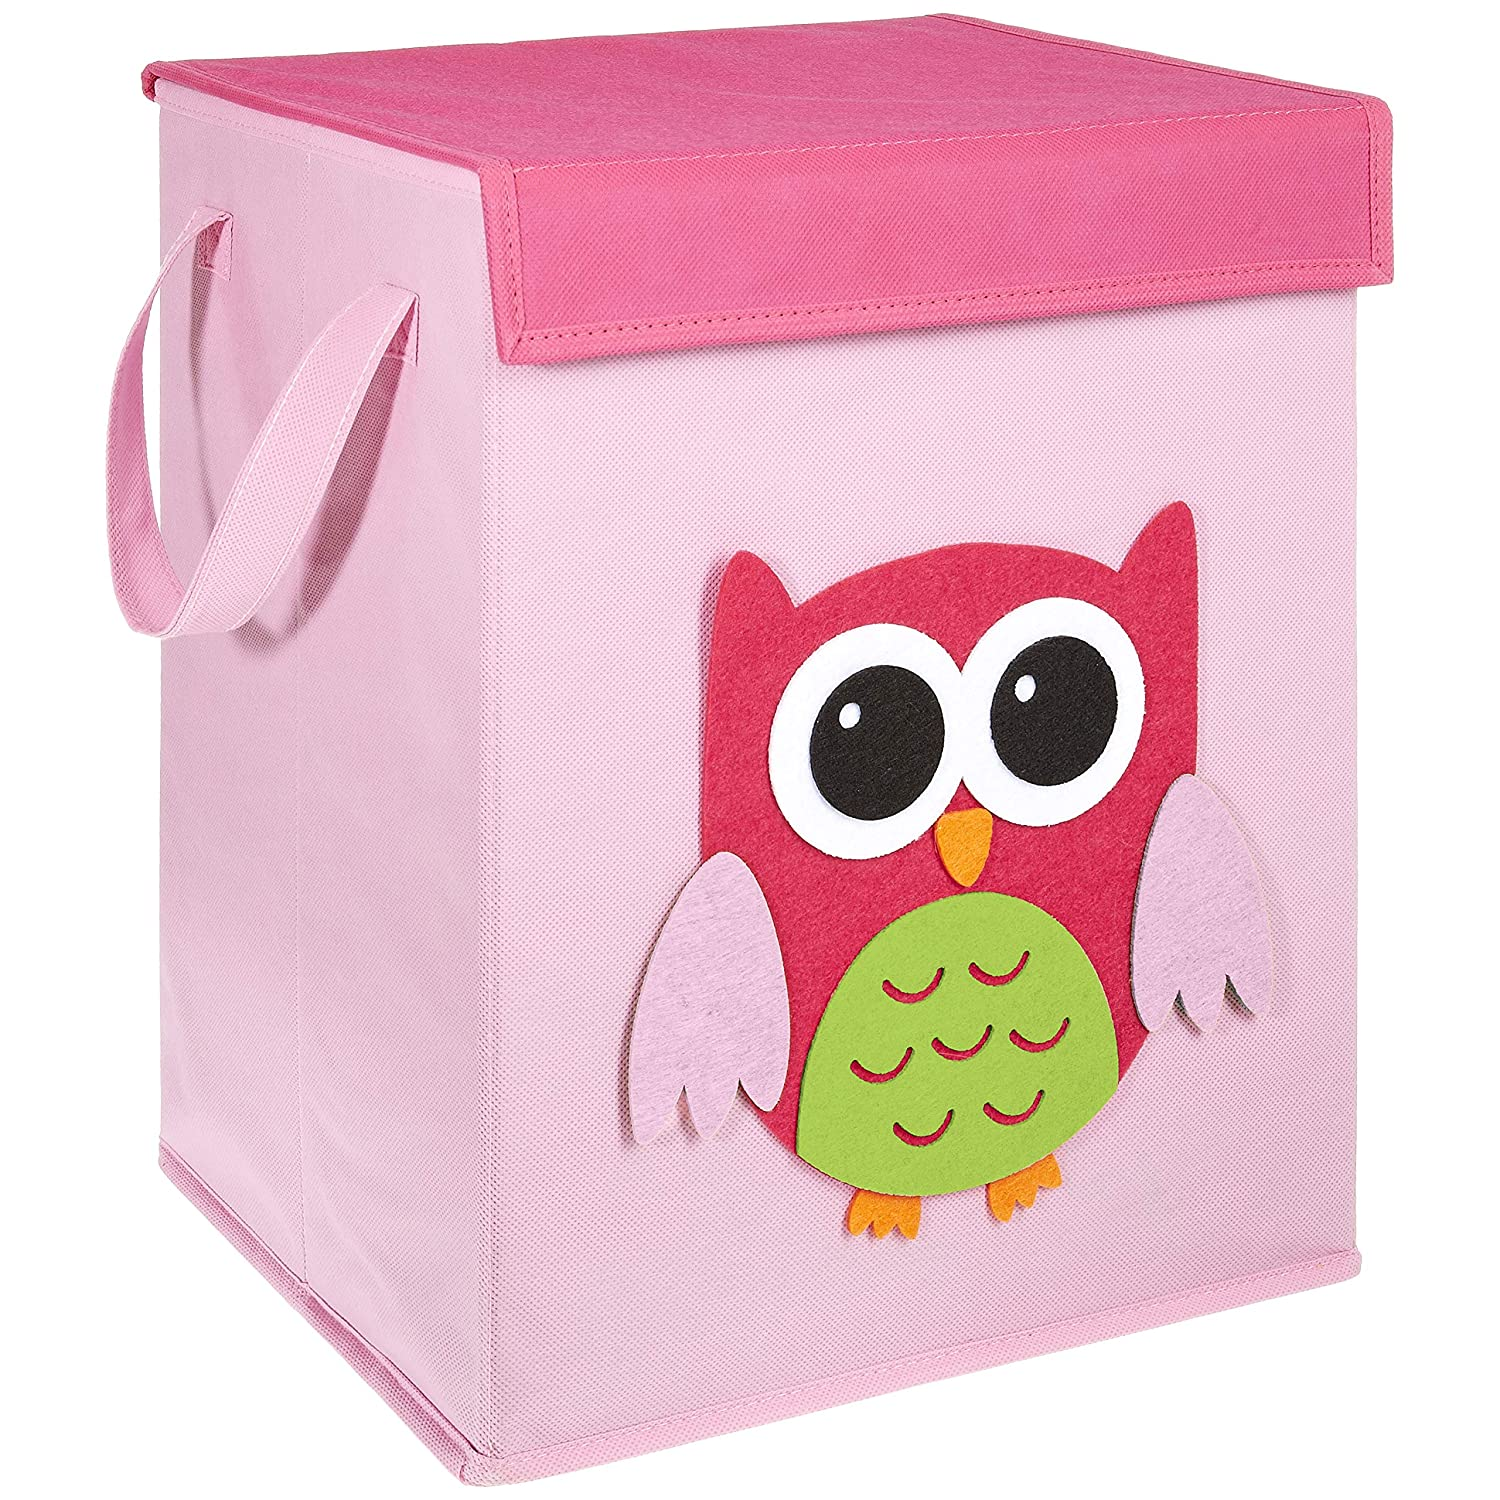 FABELBUNT® Foldable toy box with colorful motifs and lots of storage space and cover (37x 30x 26cm) Mercatura MWH-3034